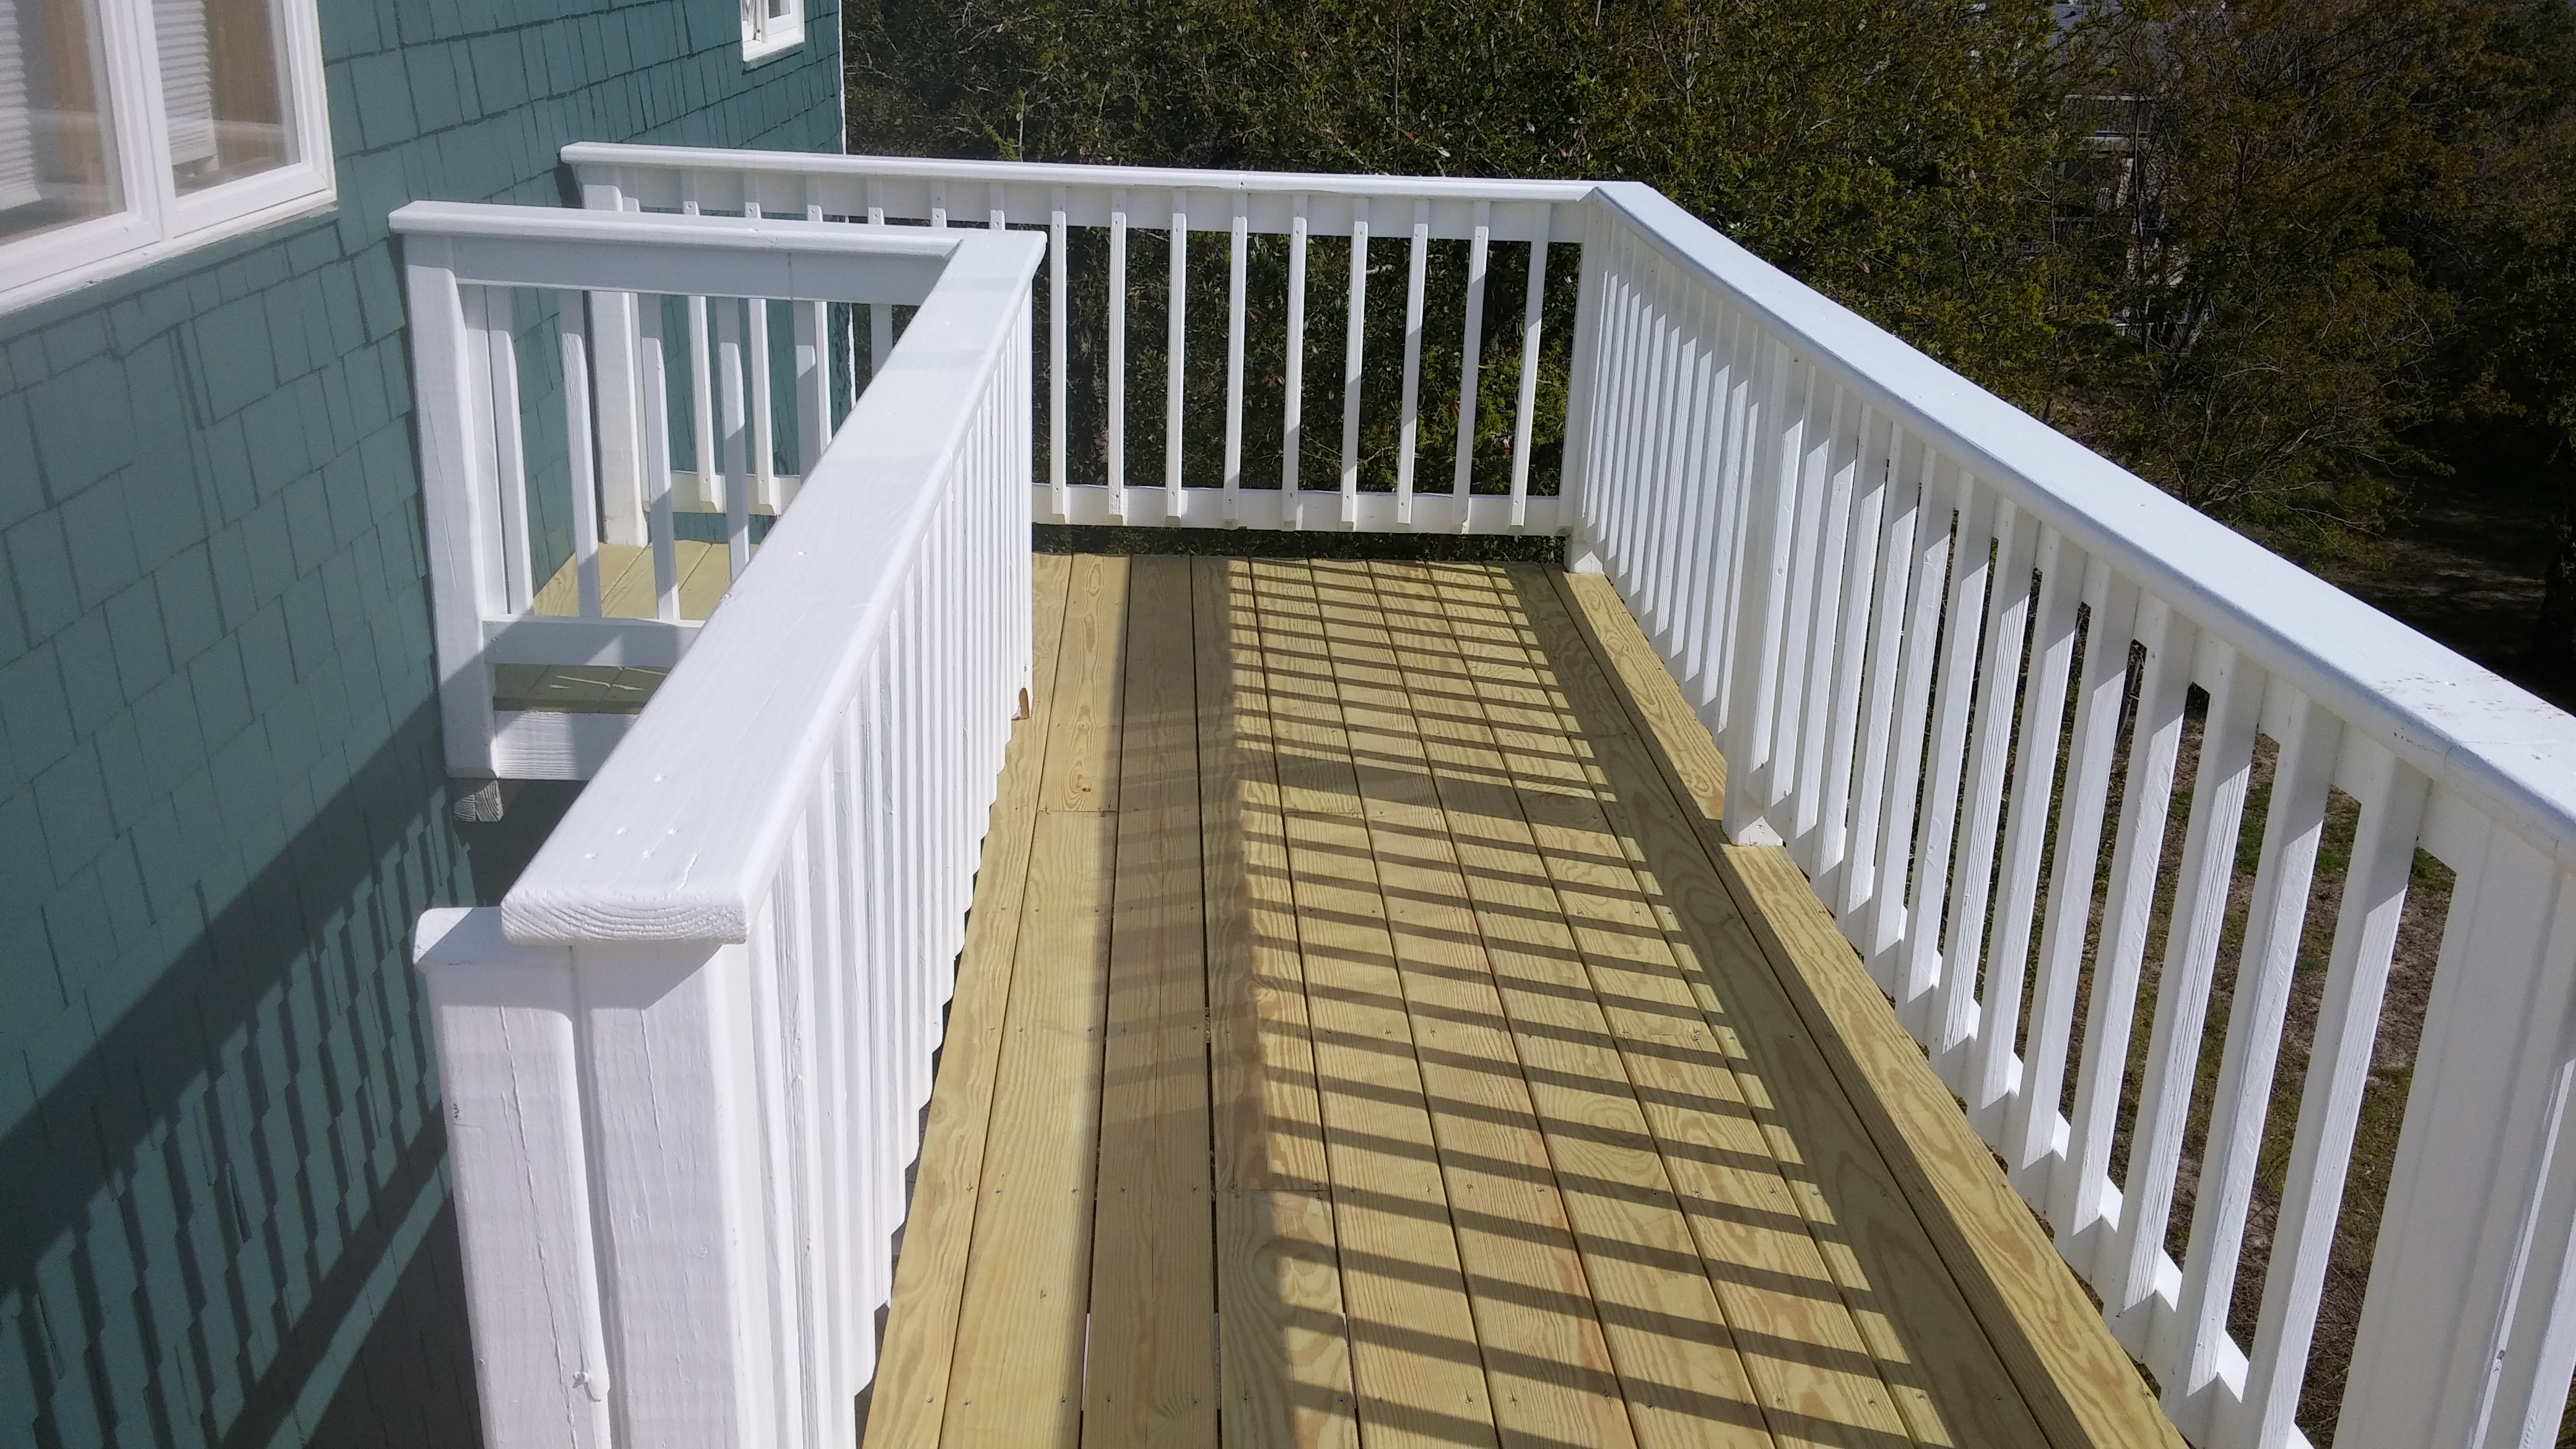 Coating Your New Deck - How Long Should You Wait?